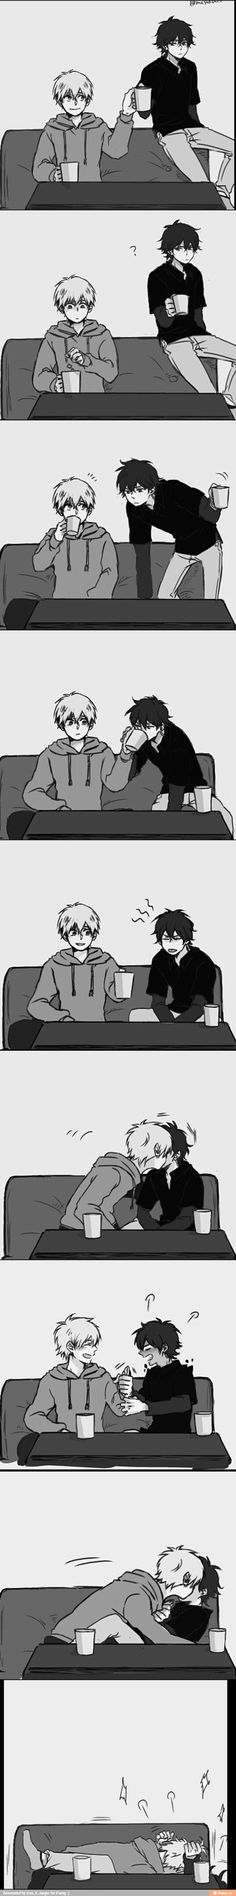 ayakane. Wooow I solangelo comic I haven't seen yet! They're adorable.